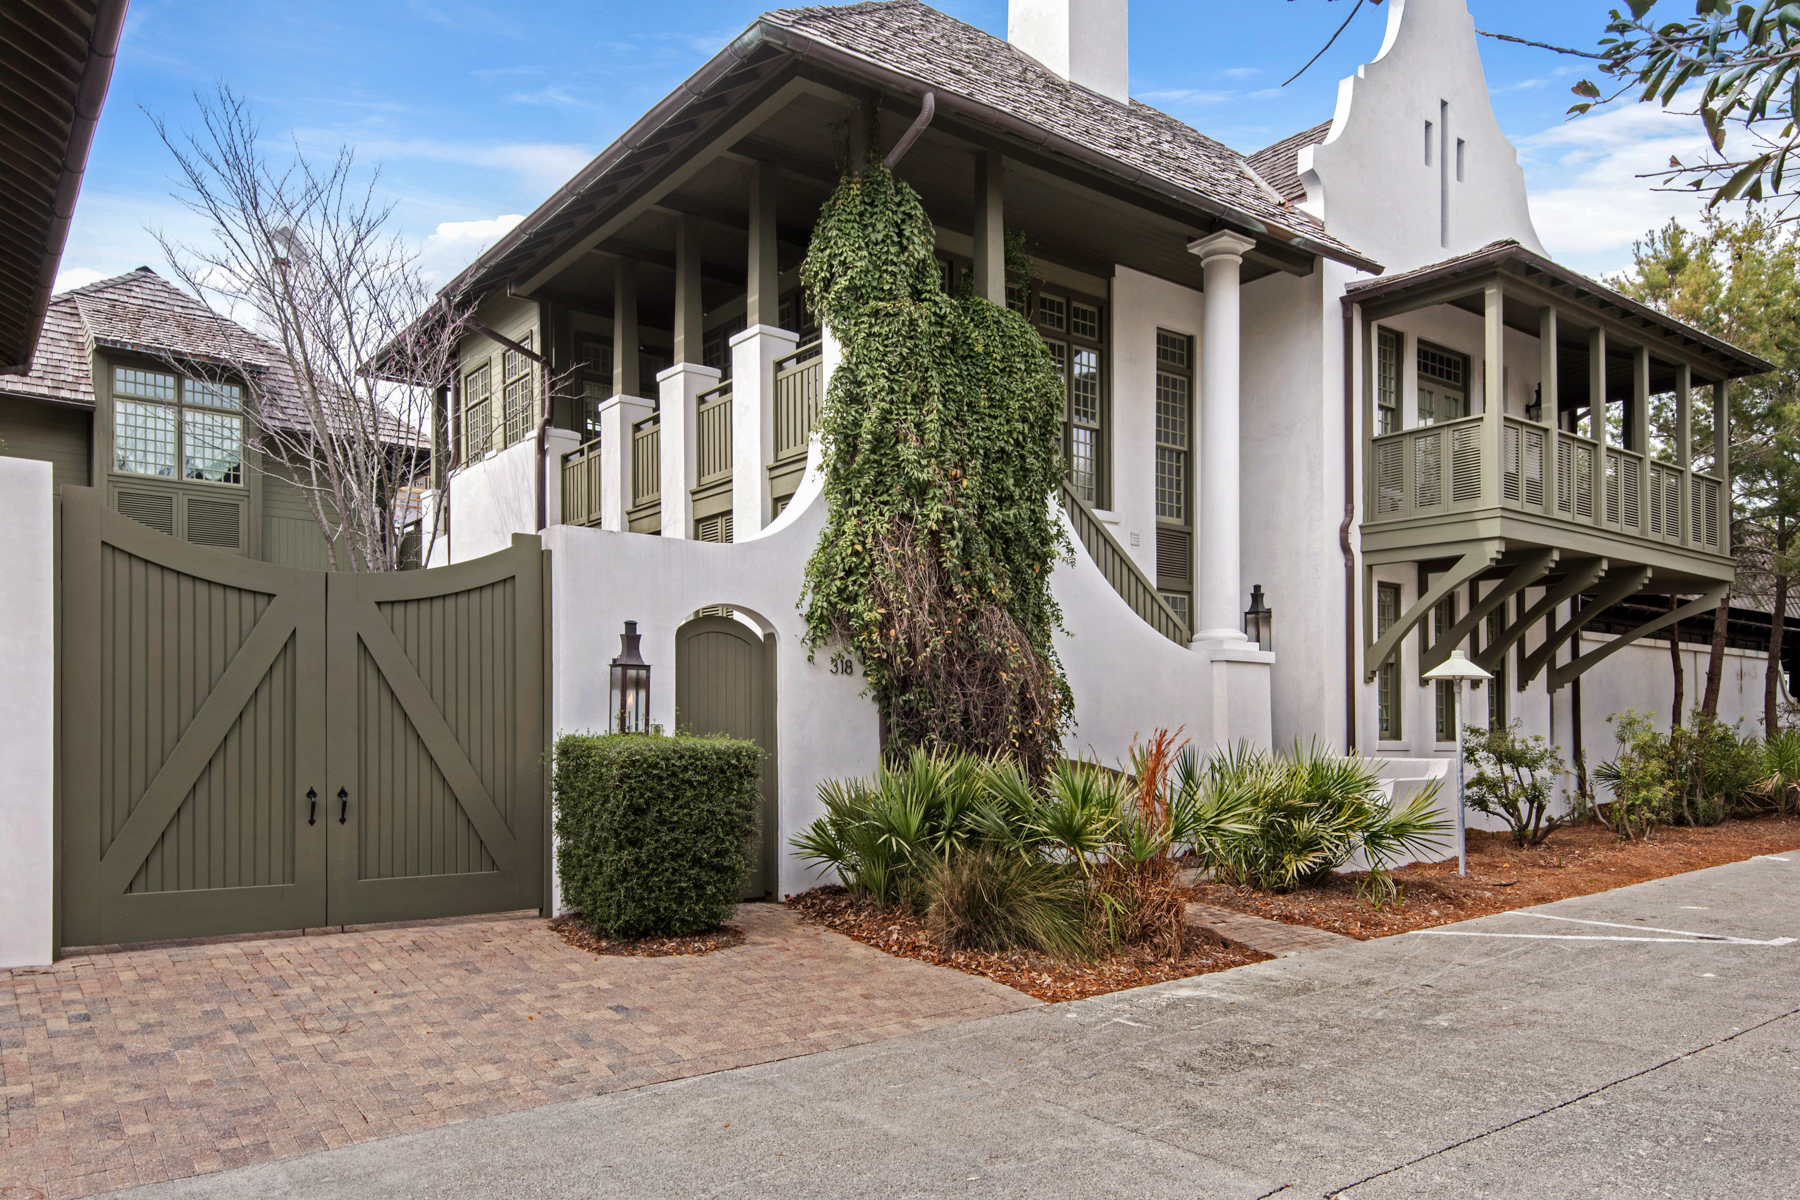 一戸建て のために 売買 アット ARCHITECTURAL STYLE AND ITALIAN FINISHES DEFINE THIS CLASSY BEACH HOUSE 318 West Water Street Rosemary Beach, フロリダ, 32461 アメリカ合衆国